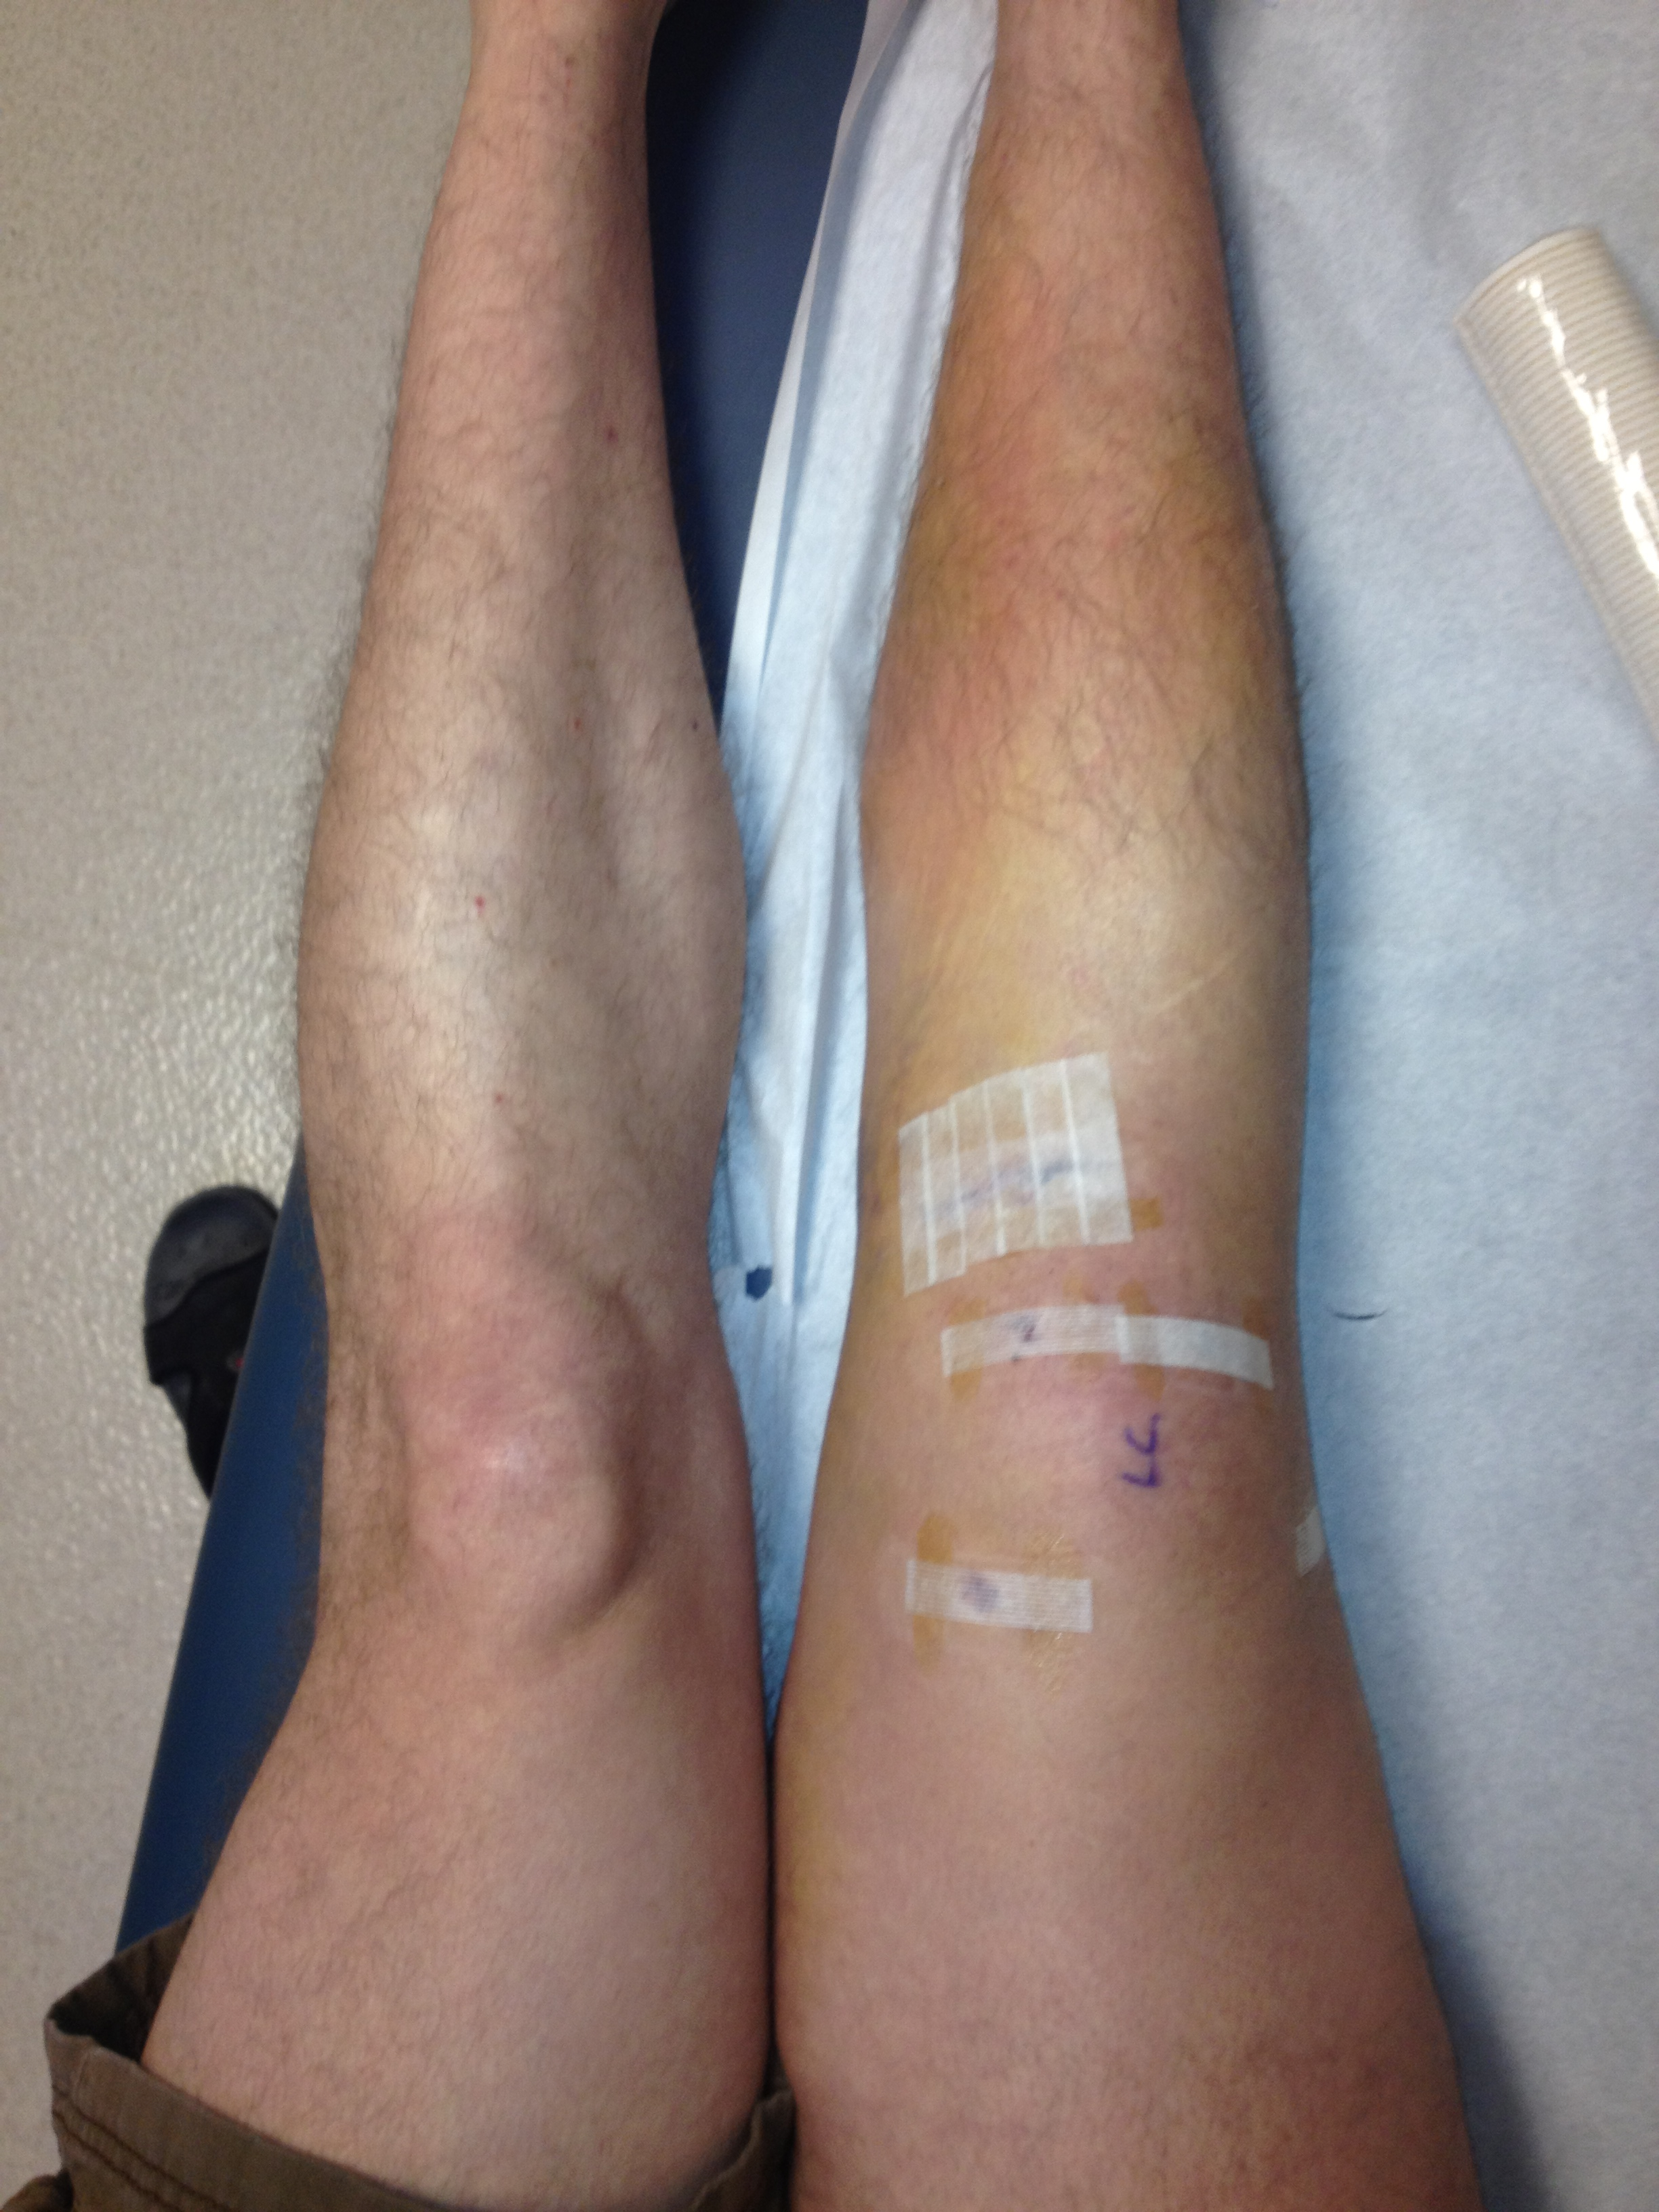 ACLHell | The Agoknee of ACL Reconstruction